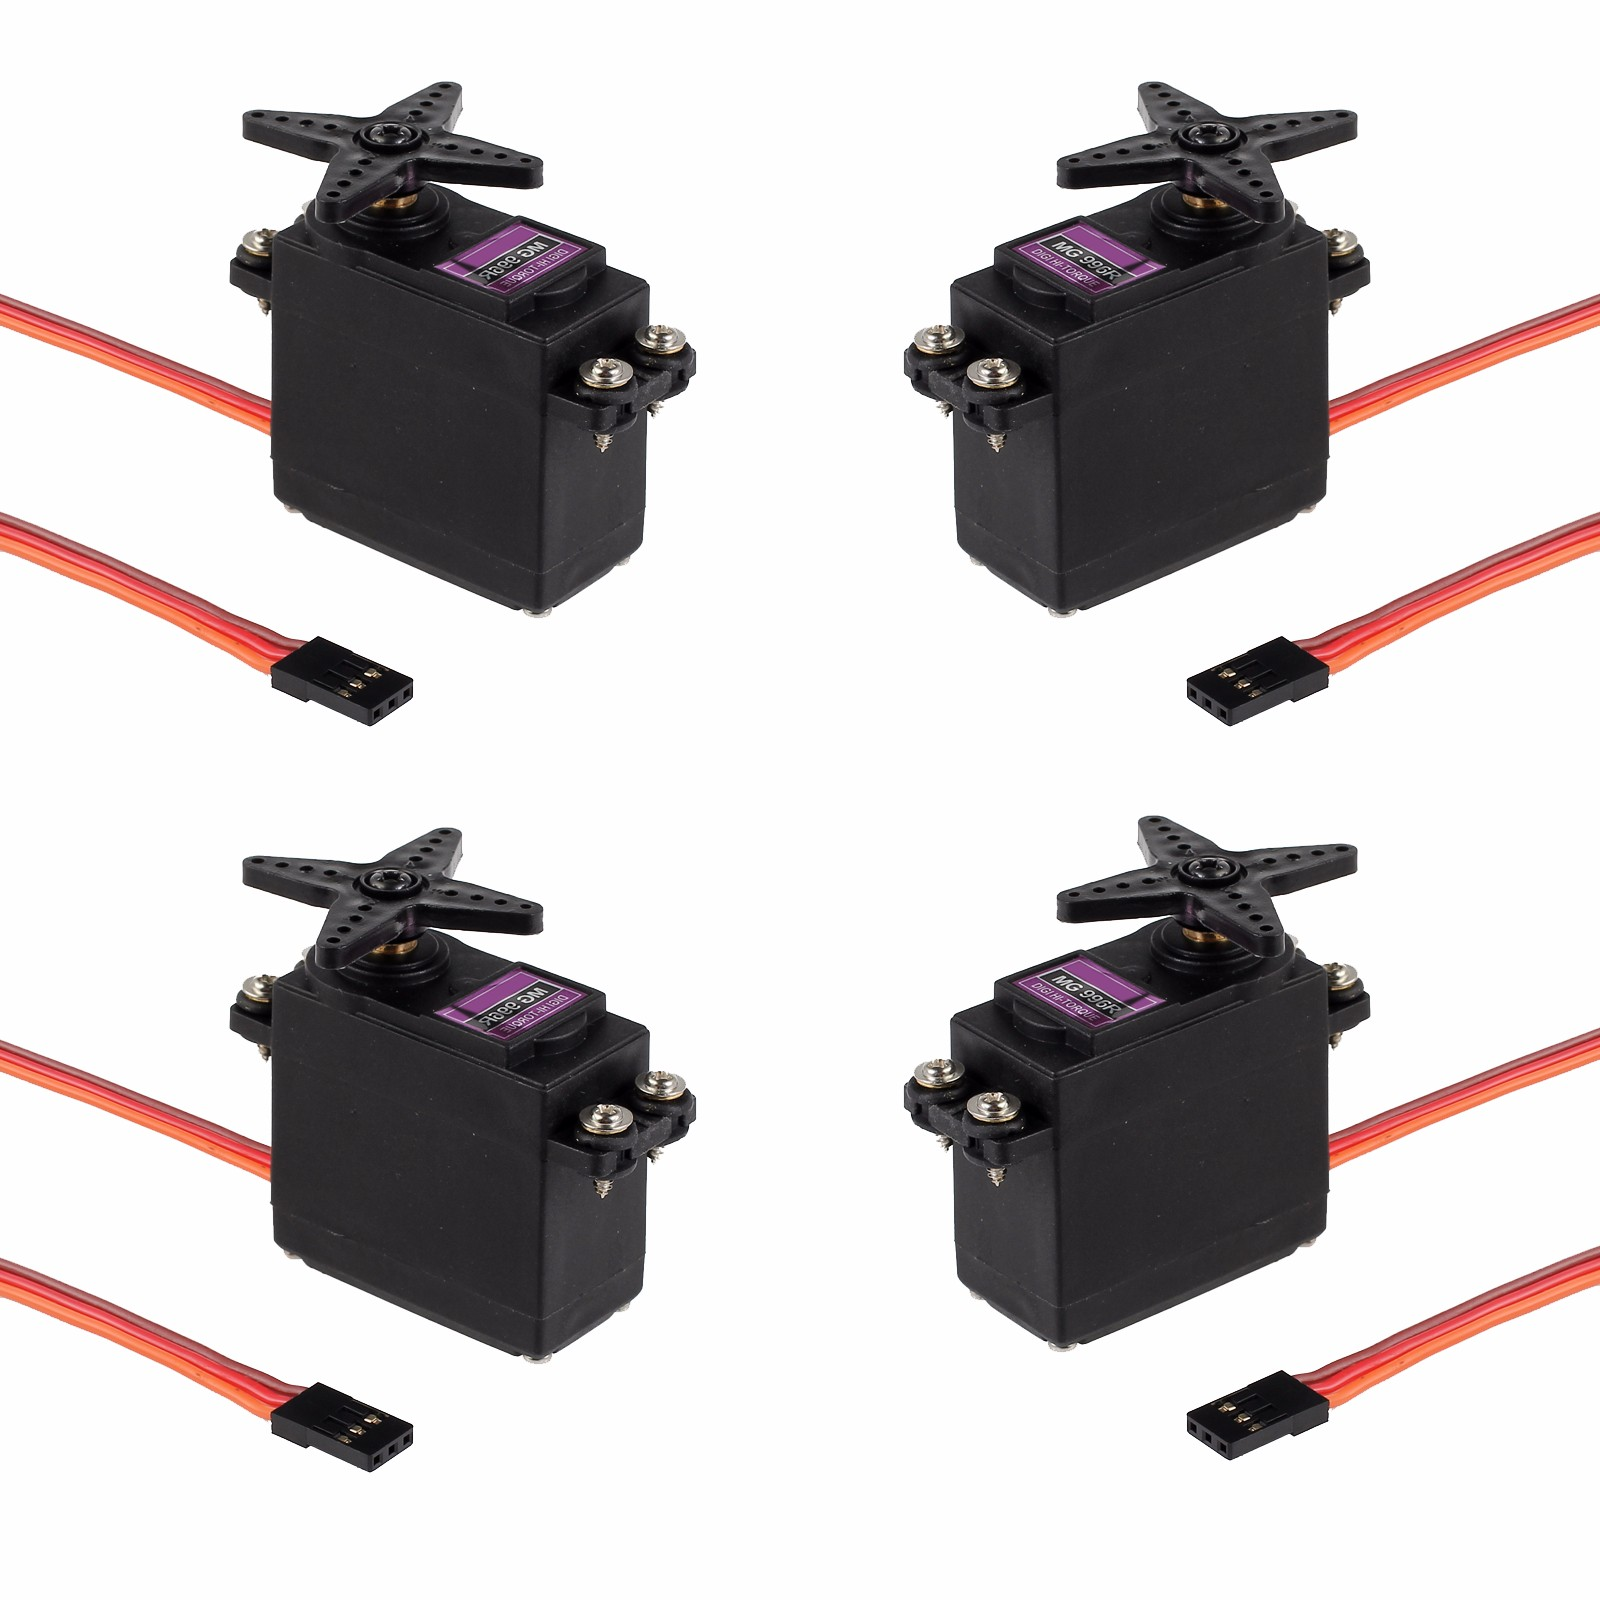 ESYNIC 4pcs MG996R Digital Torque Servo All Metal Gear Torque Servo Motor for Futaba JR 2C RC Boat Racing Car Helicopter Airplane